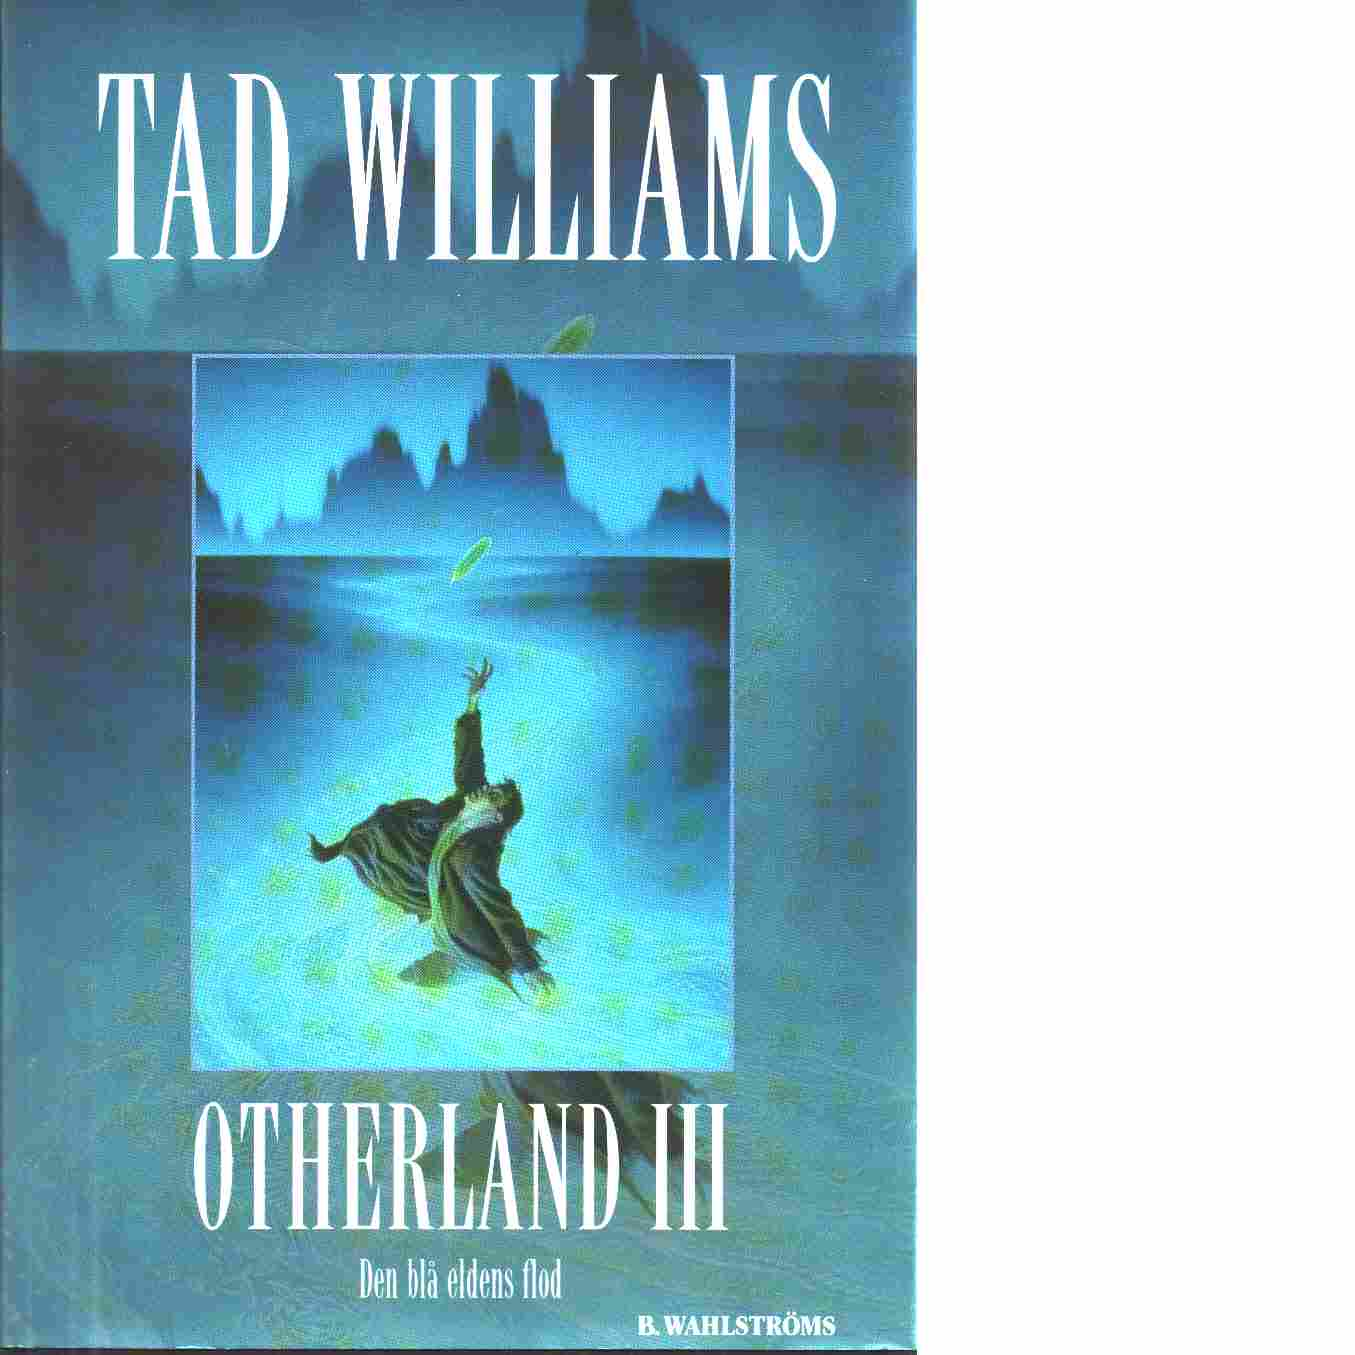 Otherland. D. 3, Den blå eldens flod - Williams, Tad